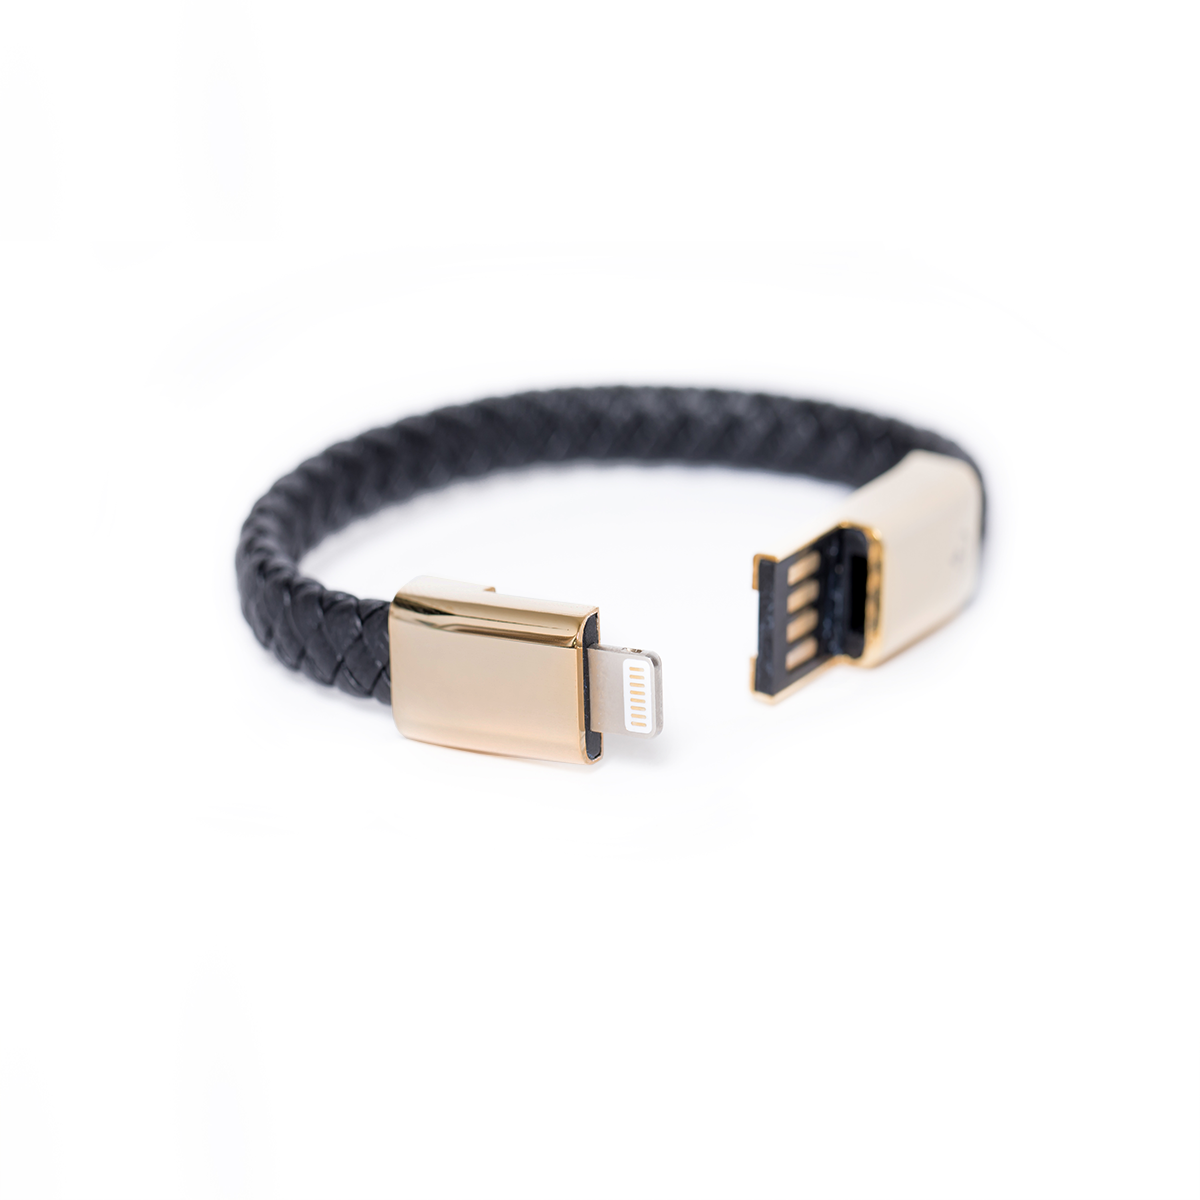 Introducing The Torro Bracelet An Iphone Charging Cable Bracelet